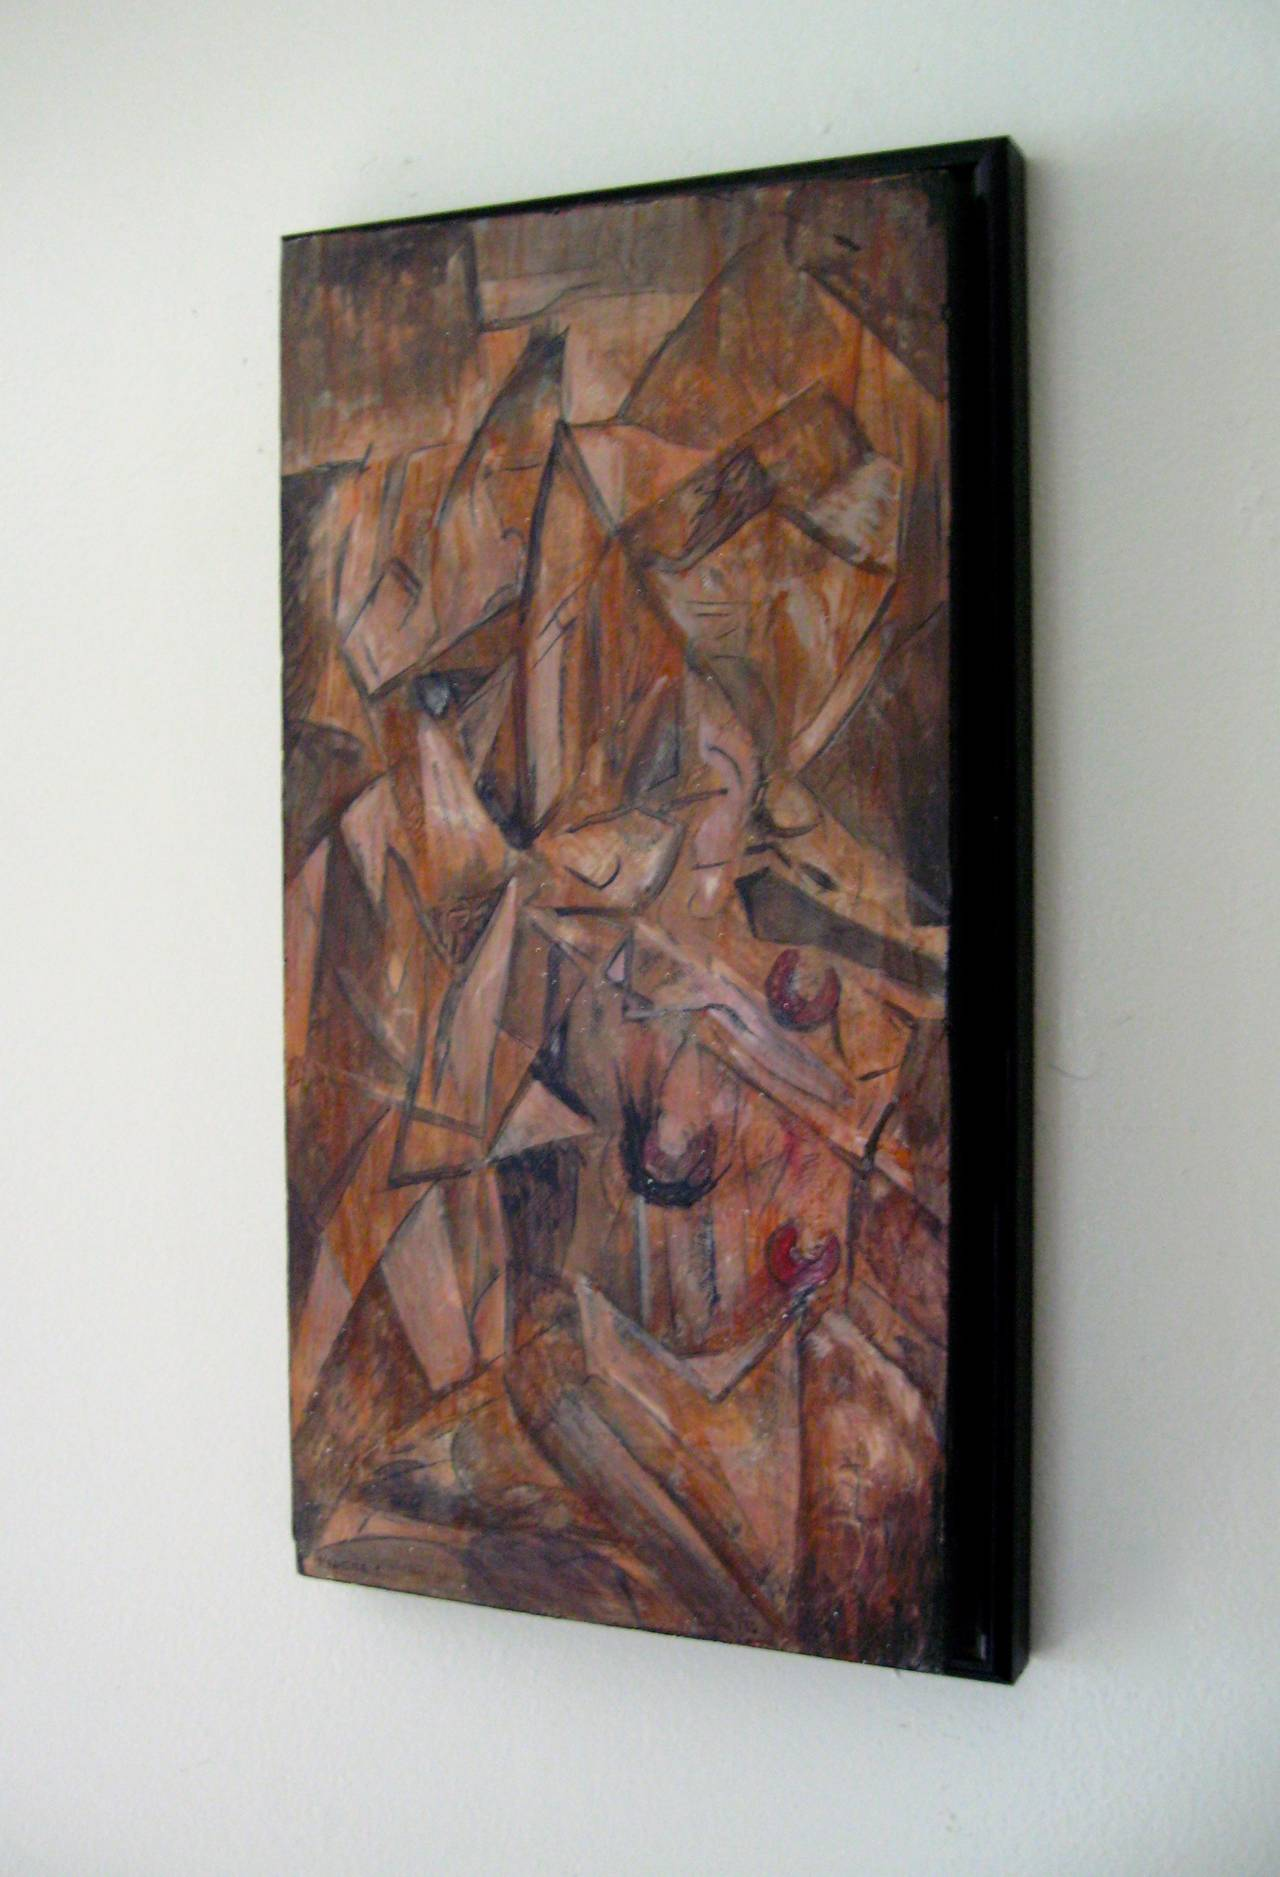 "Entitled, ""Fracture 1"", signed illegibly and dated either 1982 or 1992. The medium is oil paint on thick pine board. Labor intensive Cubist rendering of a kneeling figure and geometric shapes. The board is backed with a black metal frame"